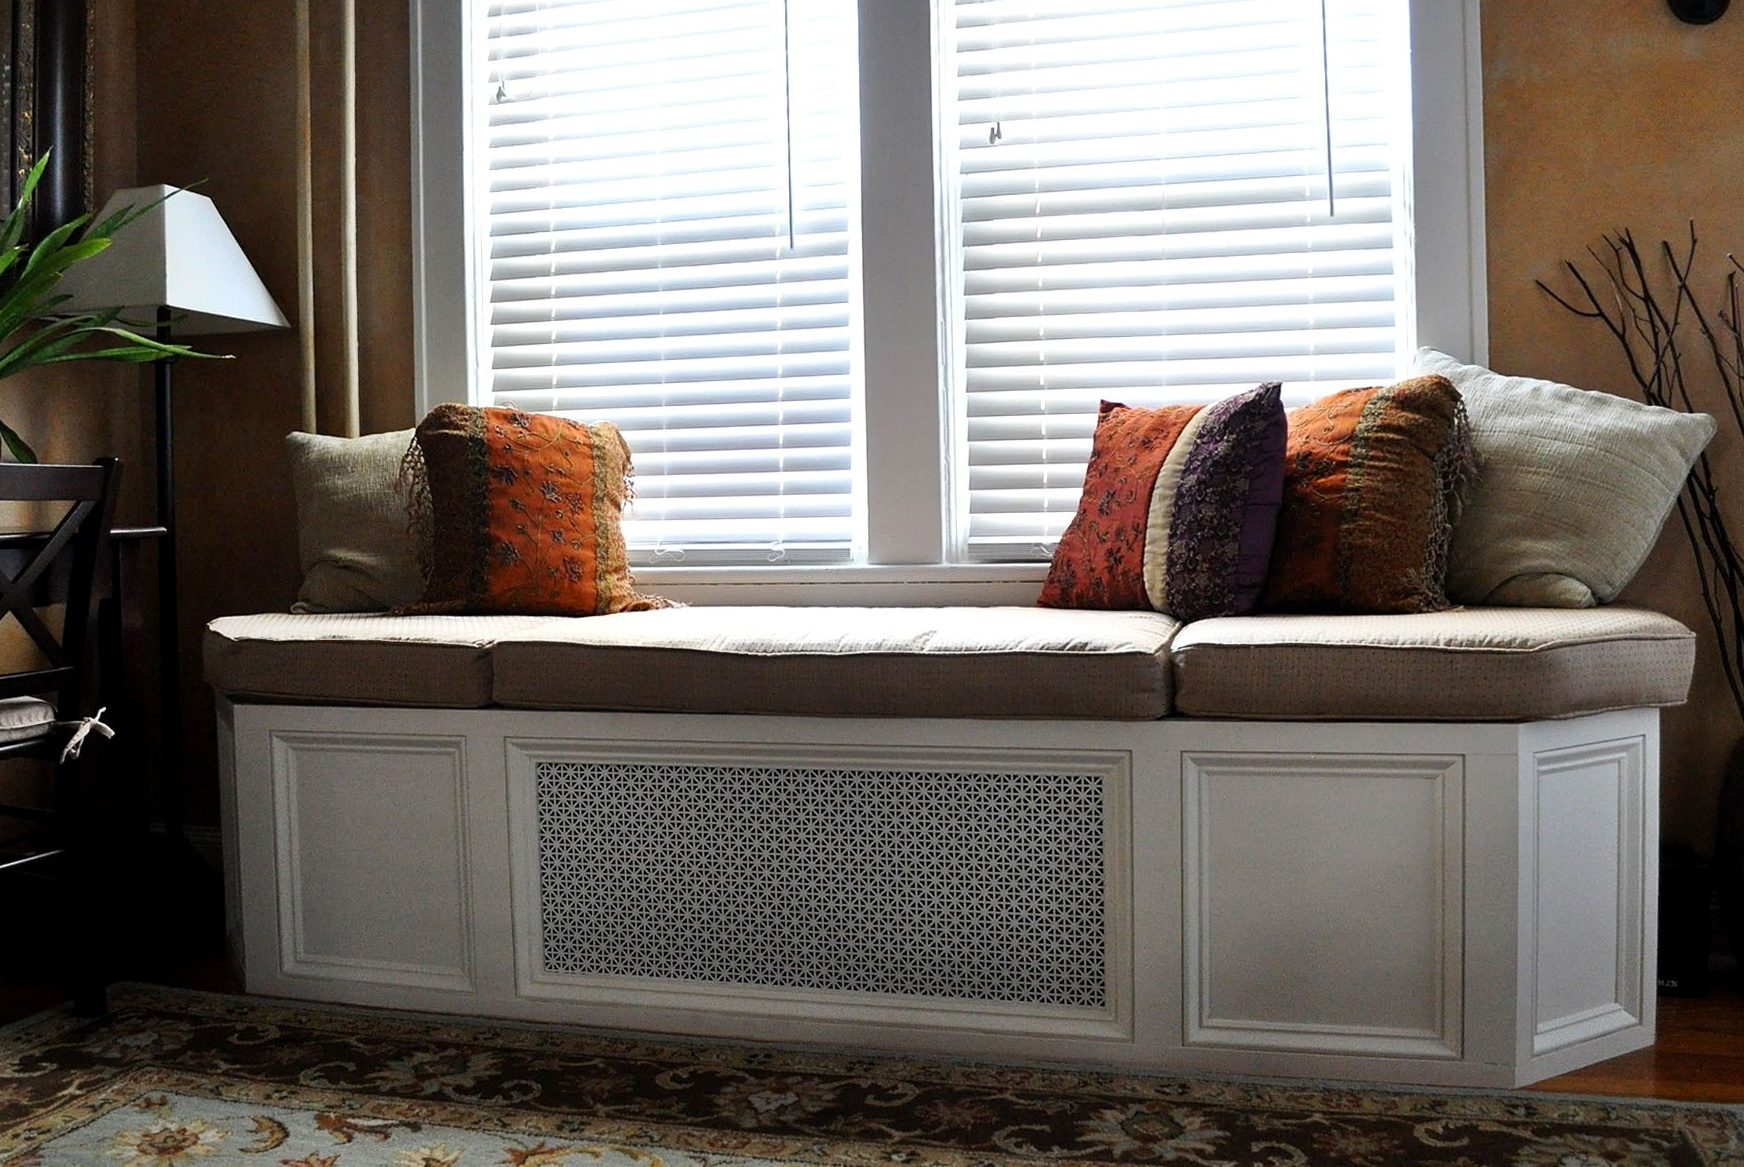 Diy Window Bench With Storage Pictures To Pin On Pinterest